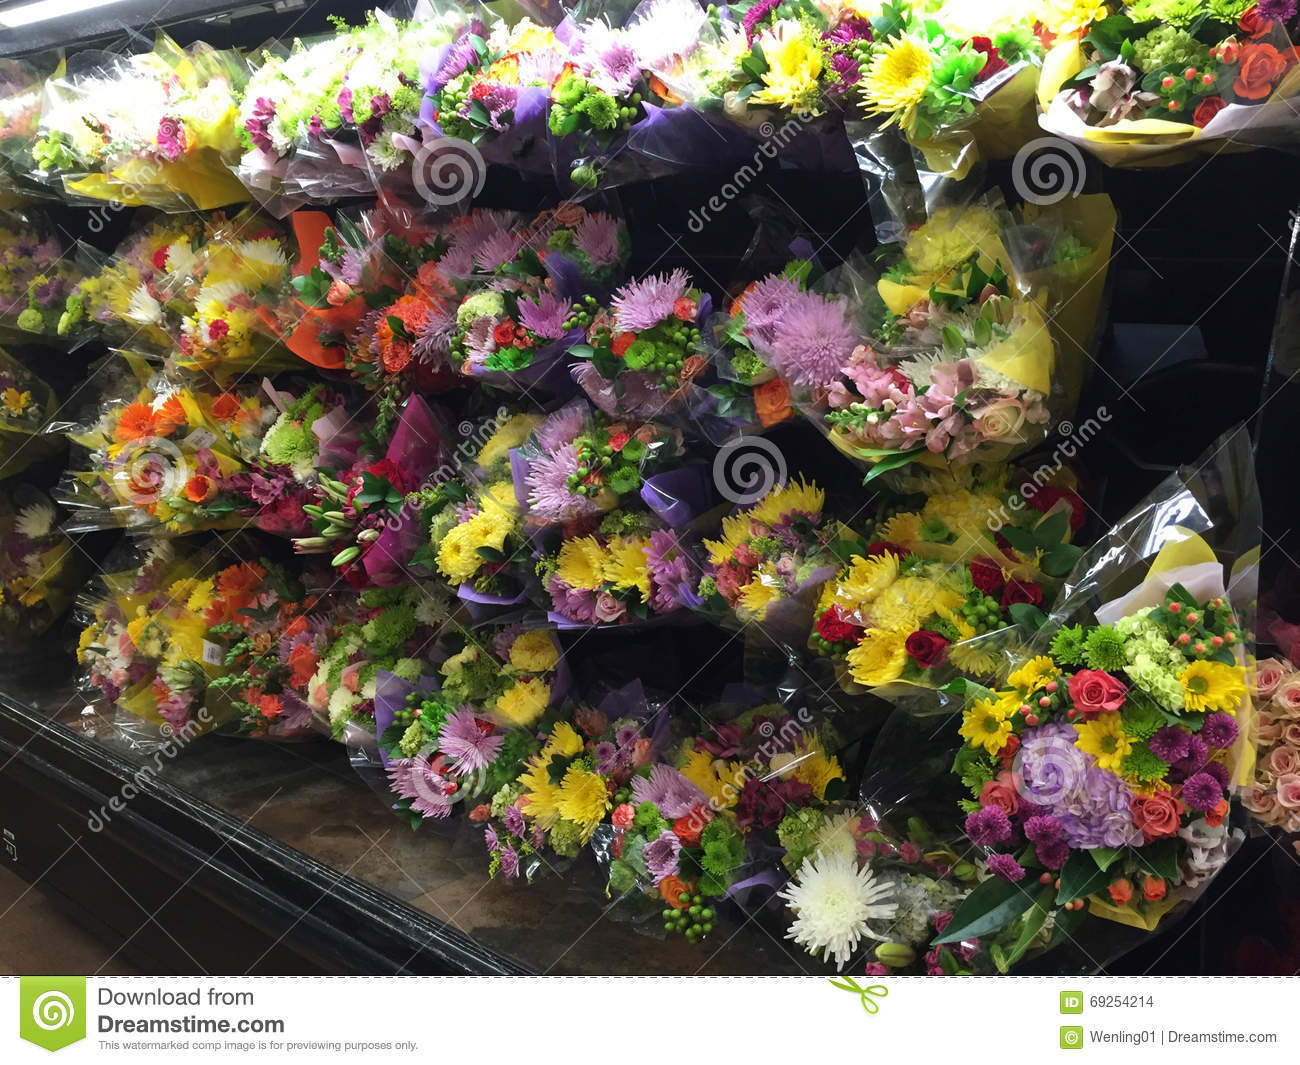 Bunch Of Flowers Selling At Supermarket Stock Photo - Image